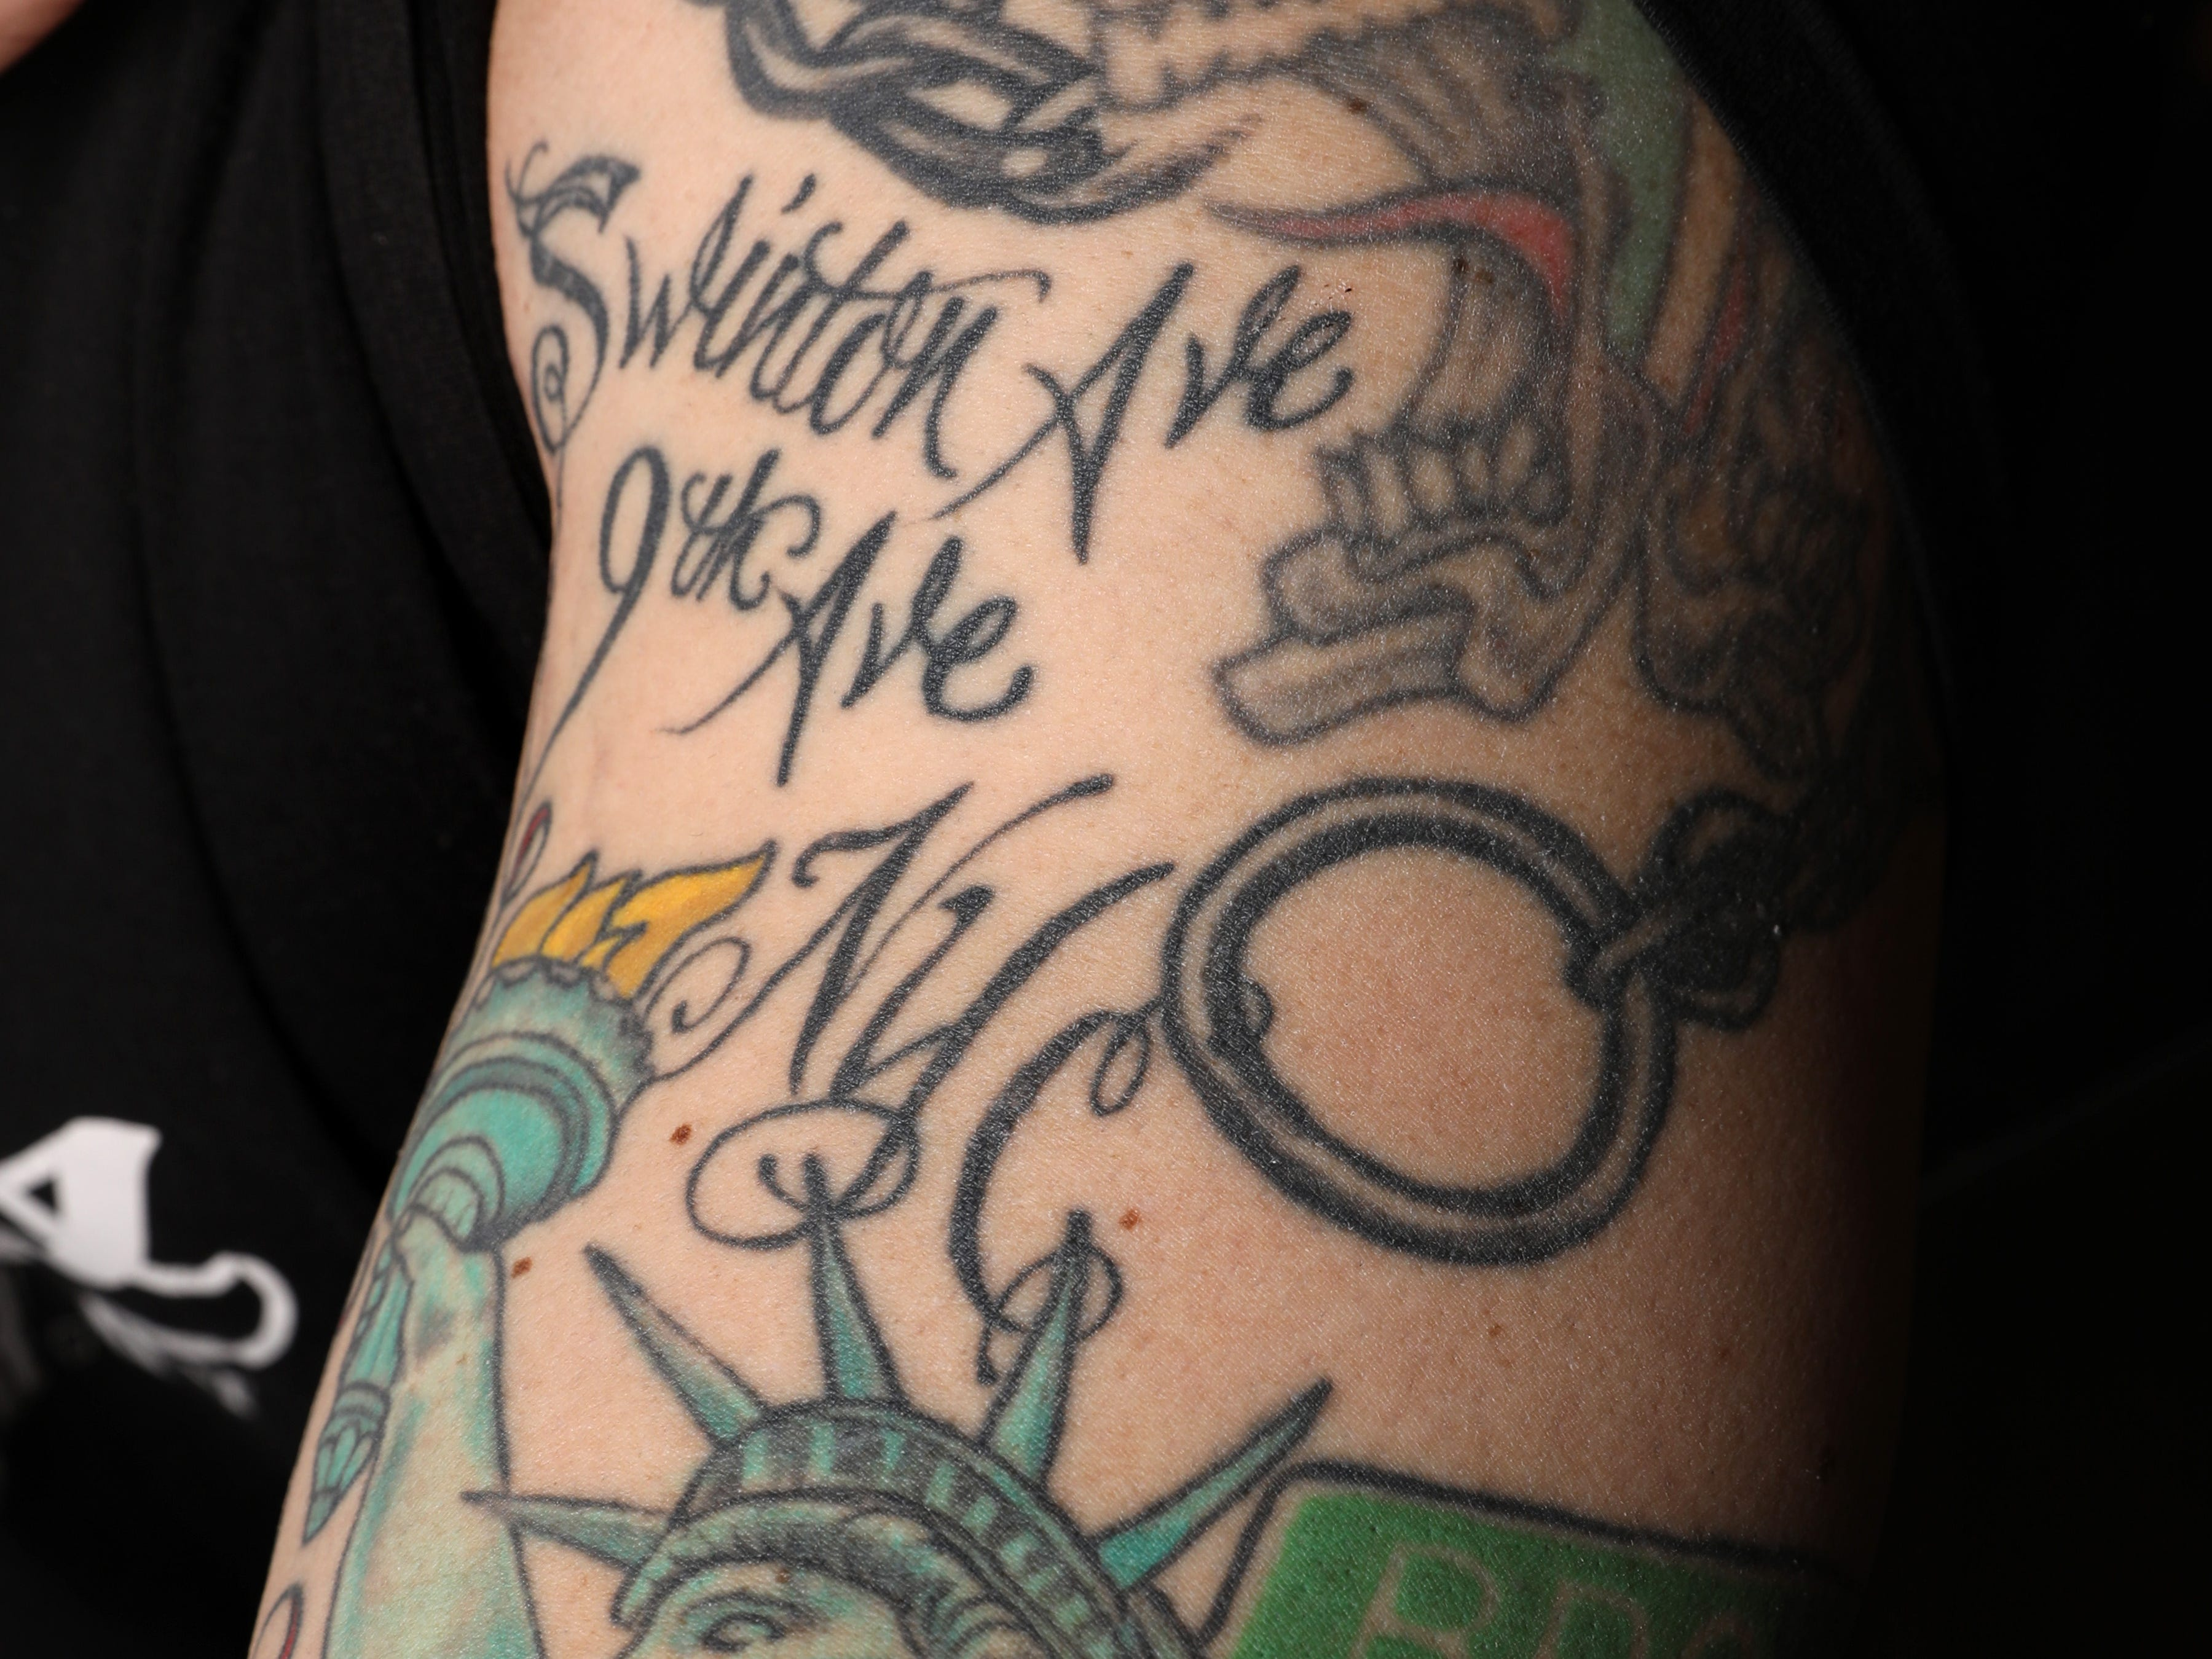 Chef Michael Russo, owner of Russo's in Pearl River, shows his tattoo dedicated to his parents' New York City roots, March 19, 2019. Russo finds that his tattoos tell stories about himself without saying a word.